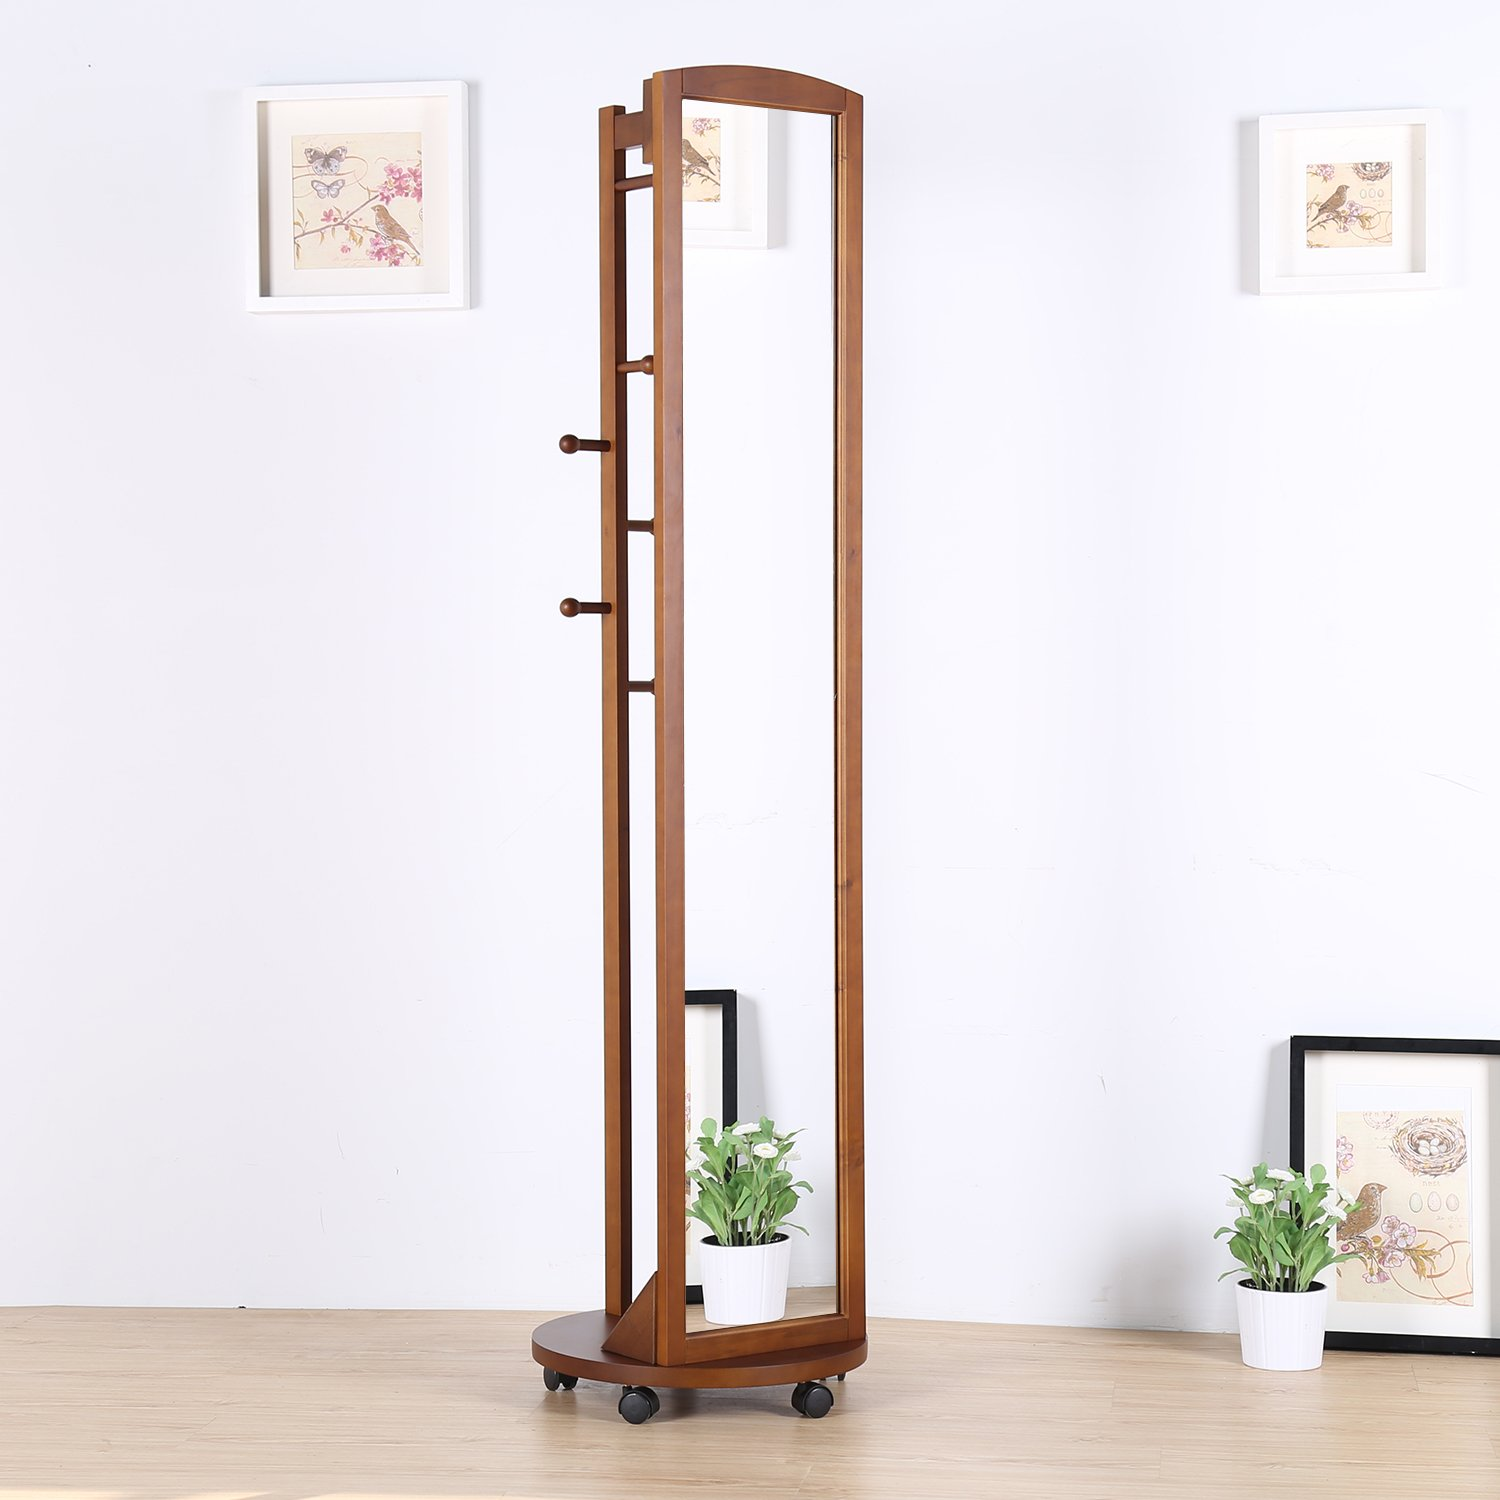 Tiny Times Multifunctional 360°Swivel Wooden Frame 69'' Tall Full Length Mirror Dressing Mirror Body Mirror Floor Mirror with Hanging Bar,Coat Stand,Coat Hooks-Brown by Tiny Times